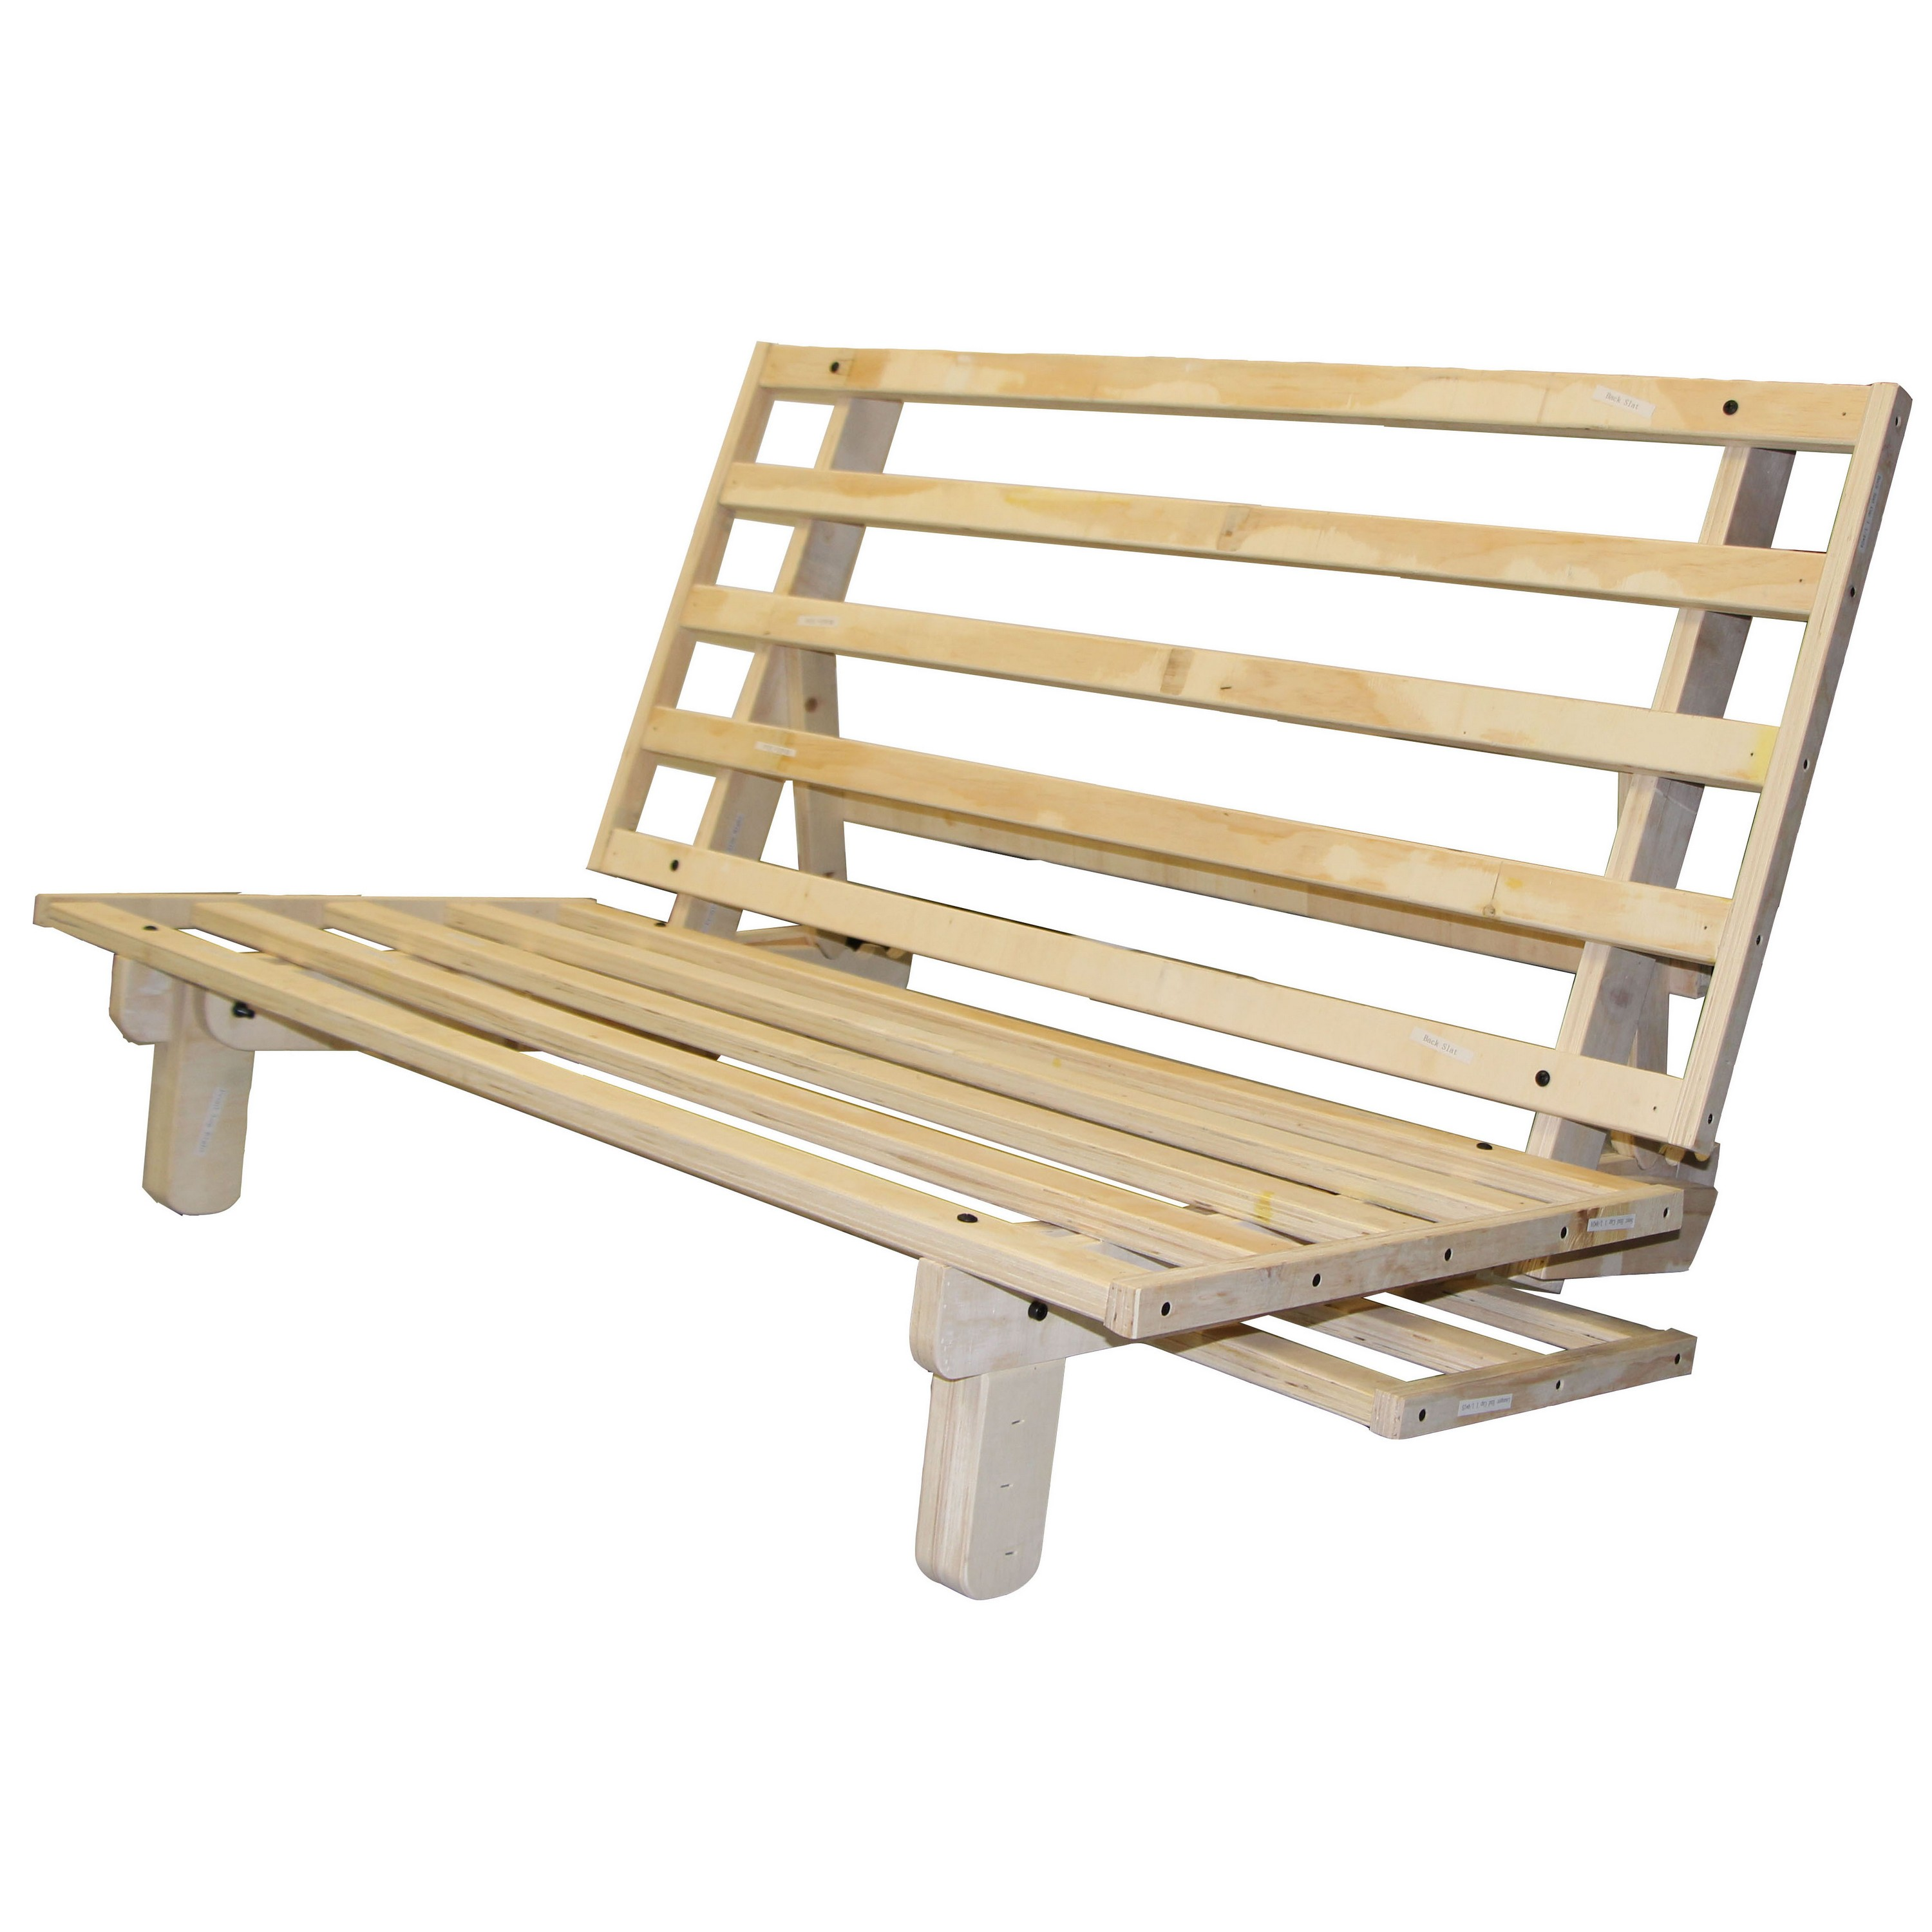 Lounger All Wood Sit, Lounge, or Sleep Futon Frame, Queen-size by Epic Furnishings